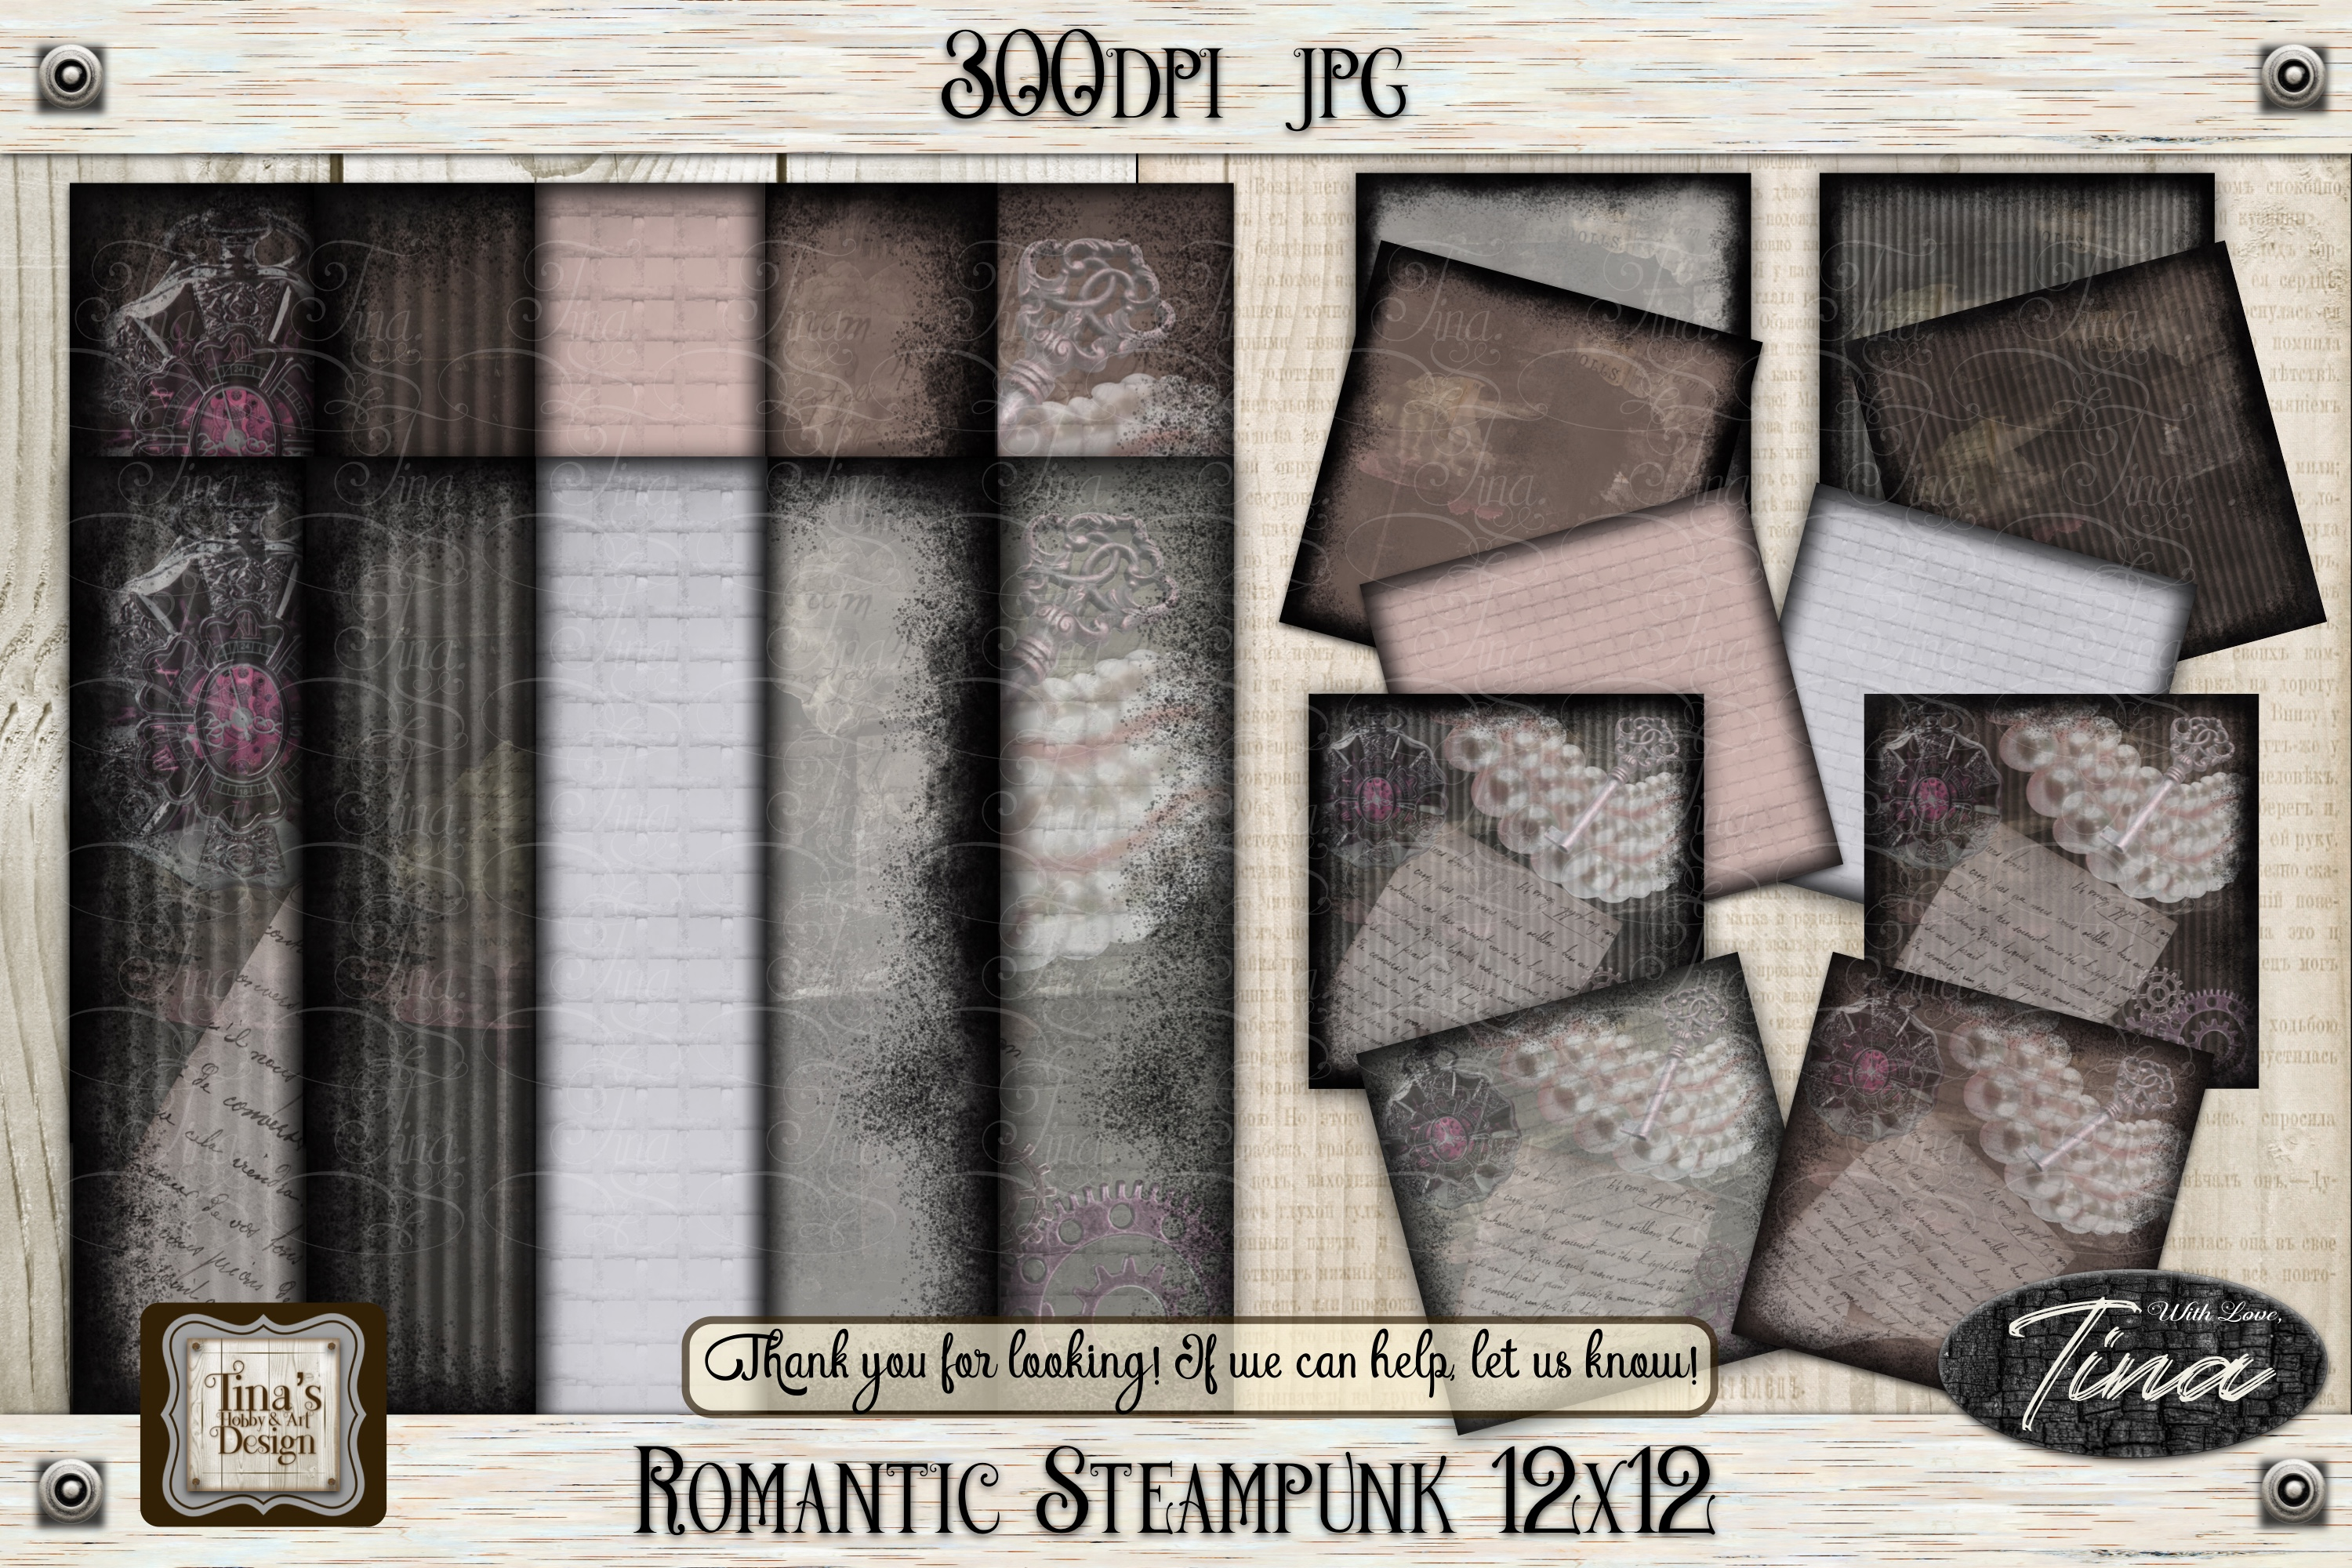 Romantic Steampunk 8.5x11 Collage Mauve Grunge 101918RS8 example image 6